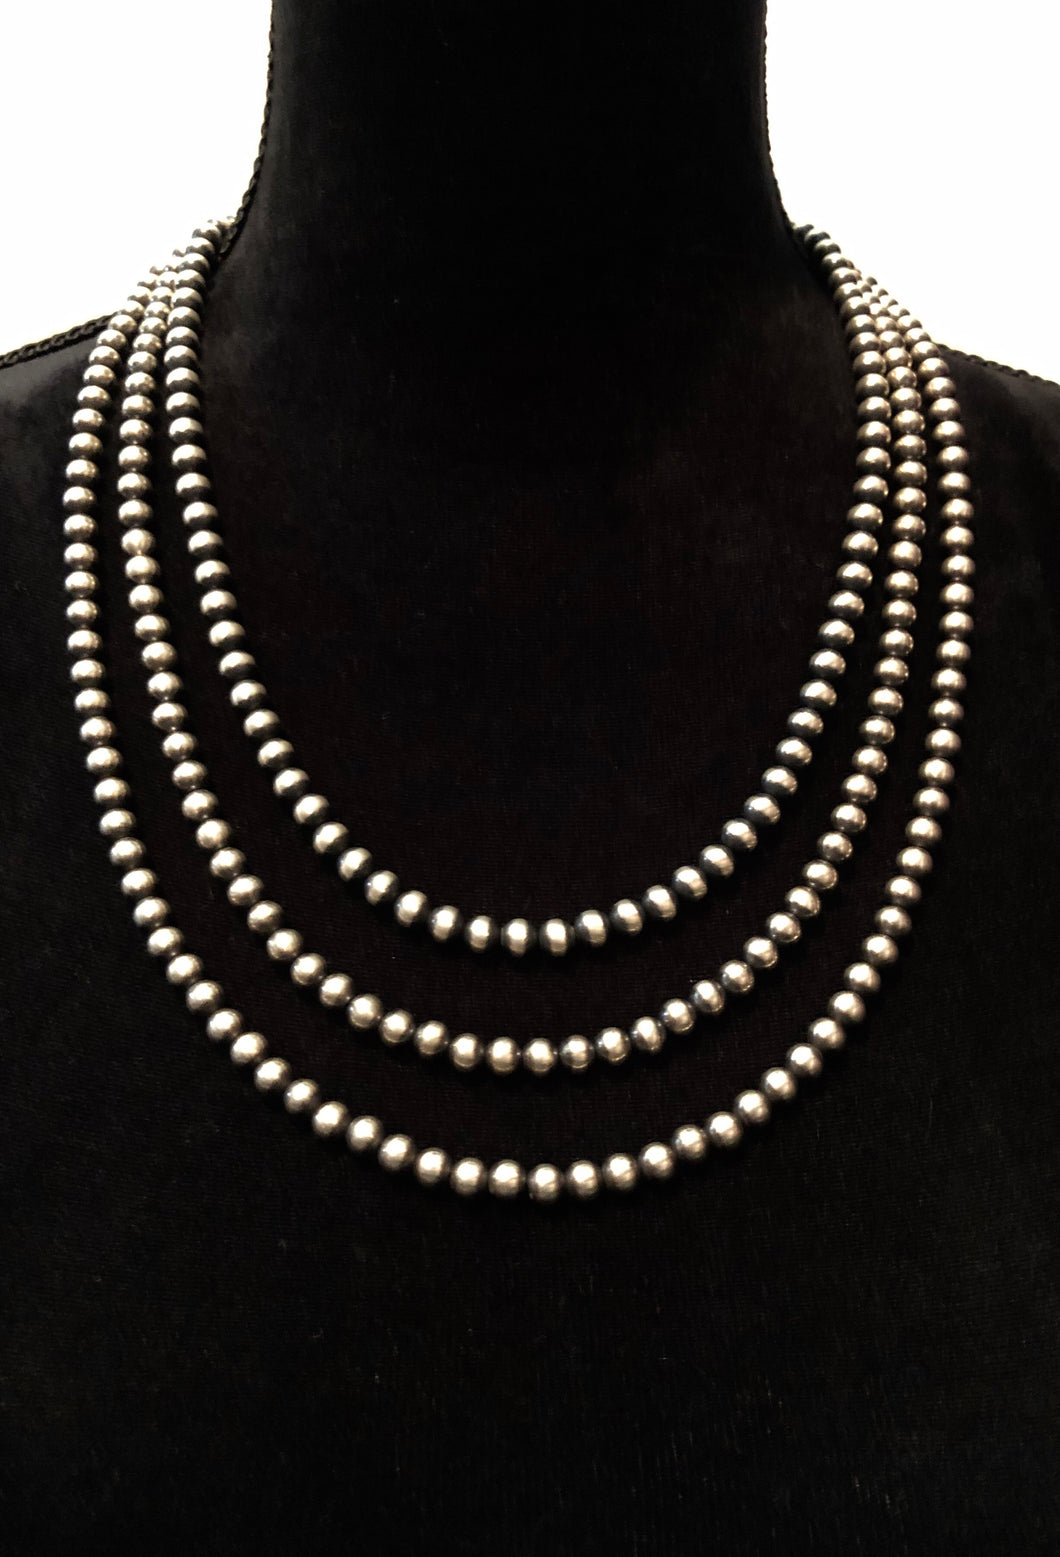 6mm Navajo Pearl Necklaces